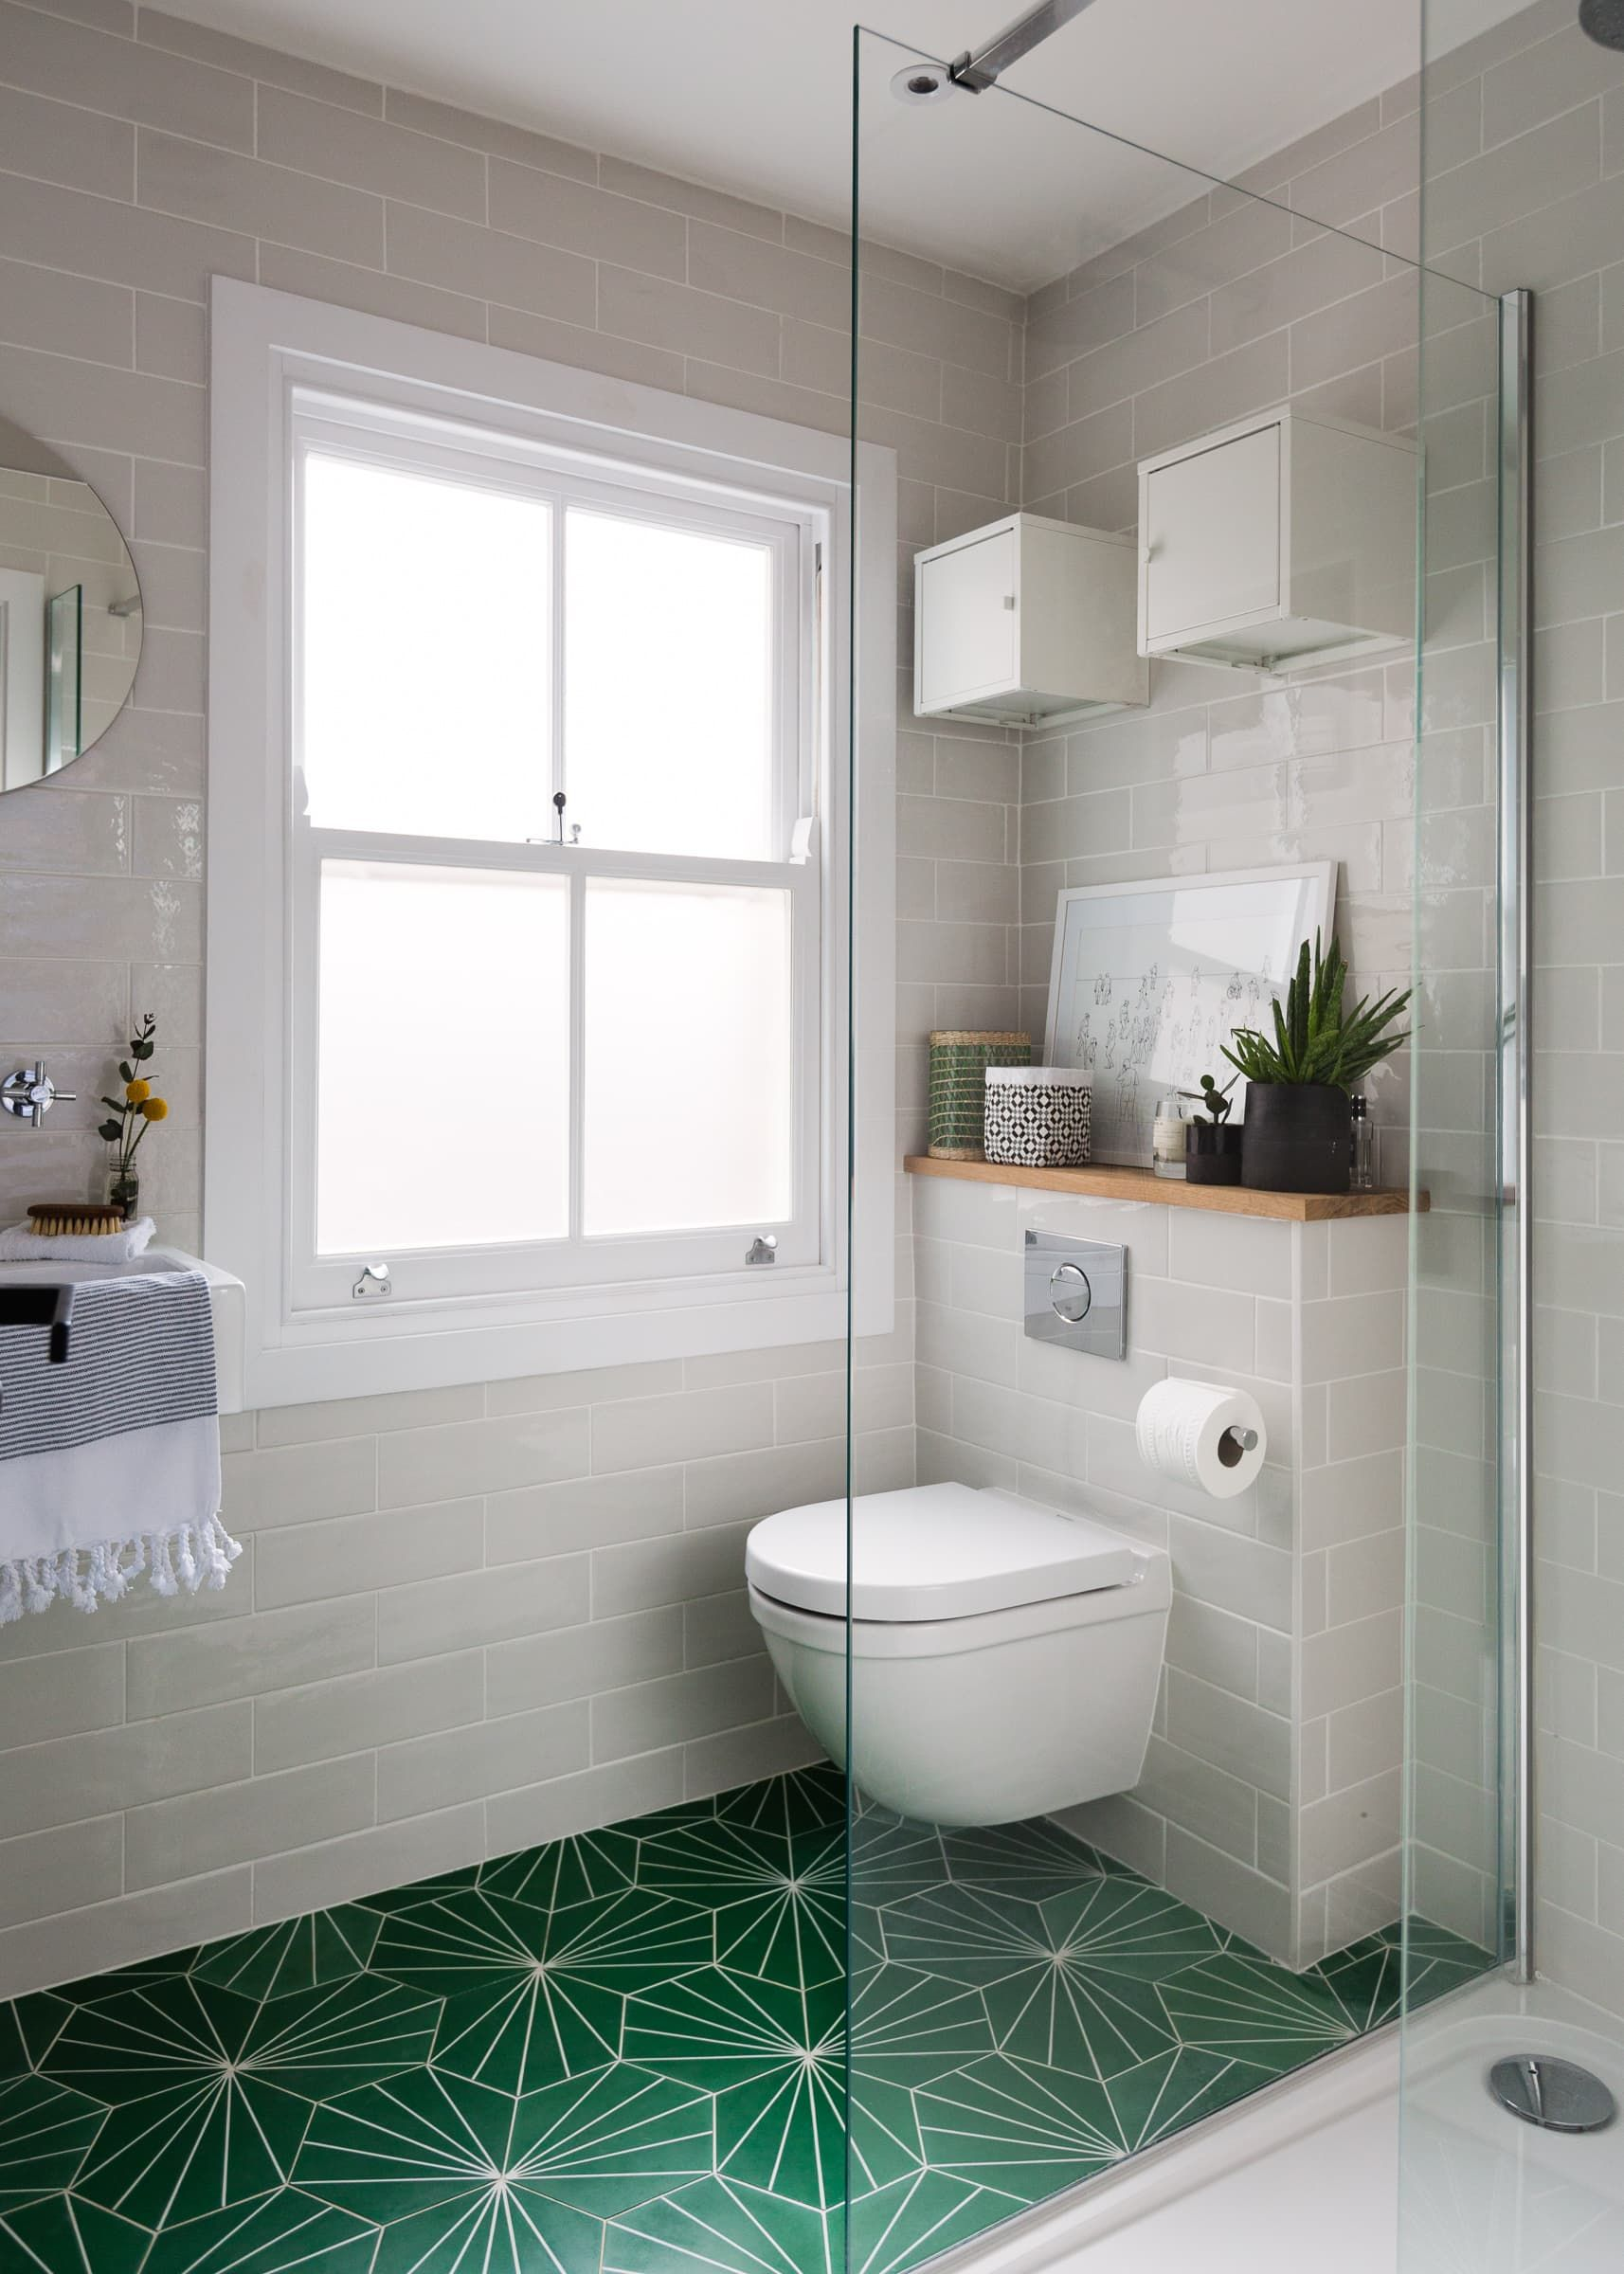 This Bathroom Emulates Modern Farmhouse Style 142cjfrippvilla It Was At First Sight With This Wall And Floor Tiles Blue Bathroom Tile Bathroom Wall Tile